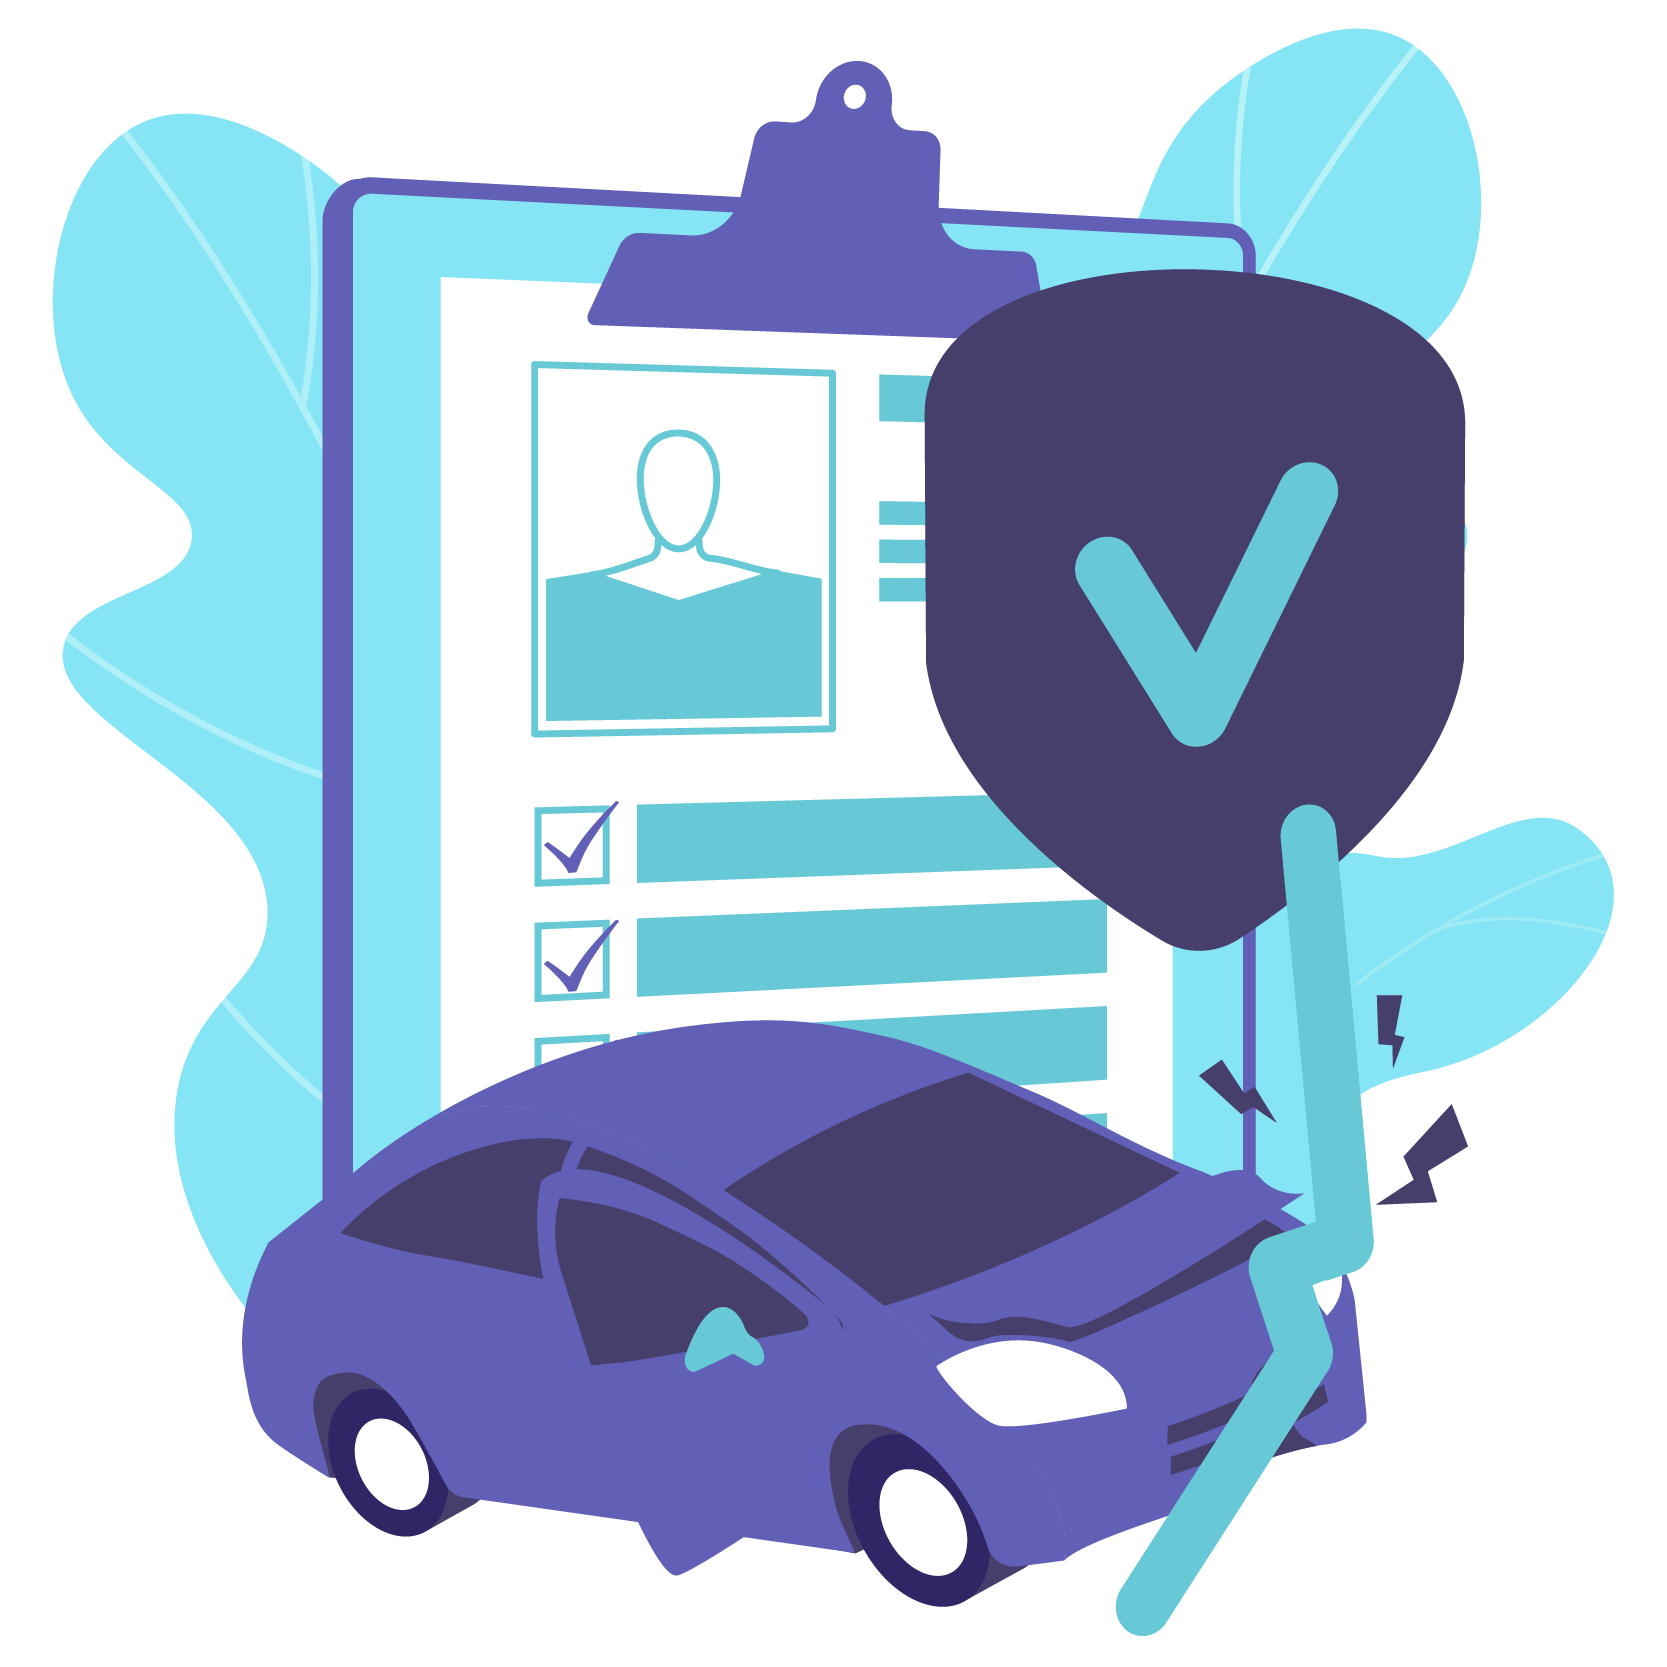 Cognitive View insurance claims